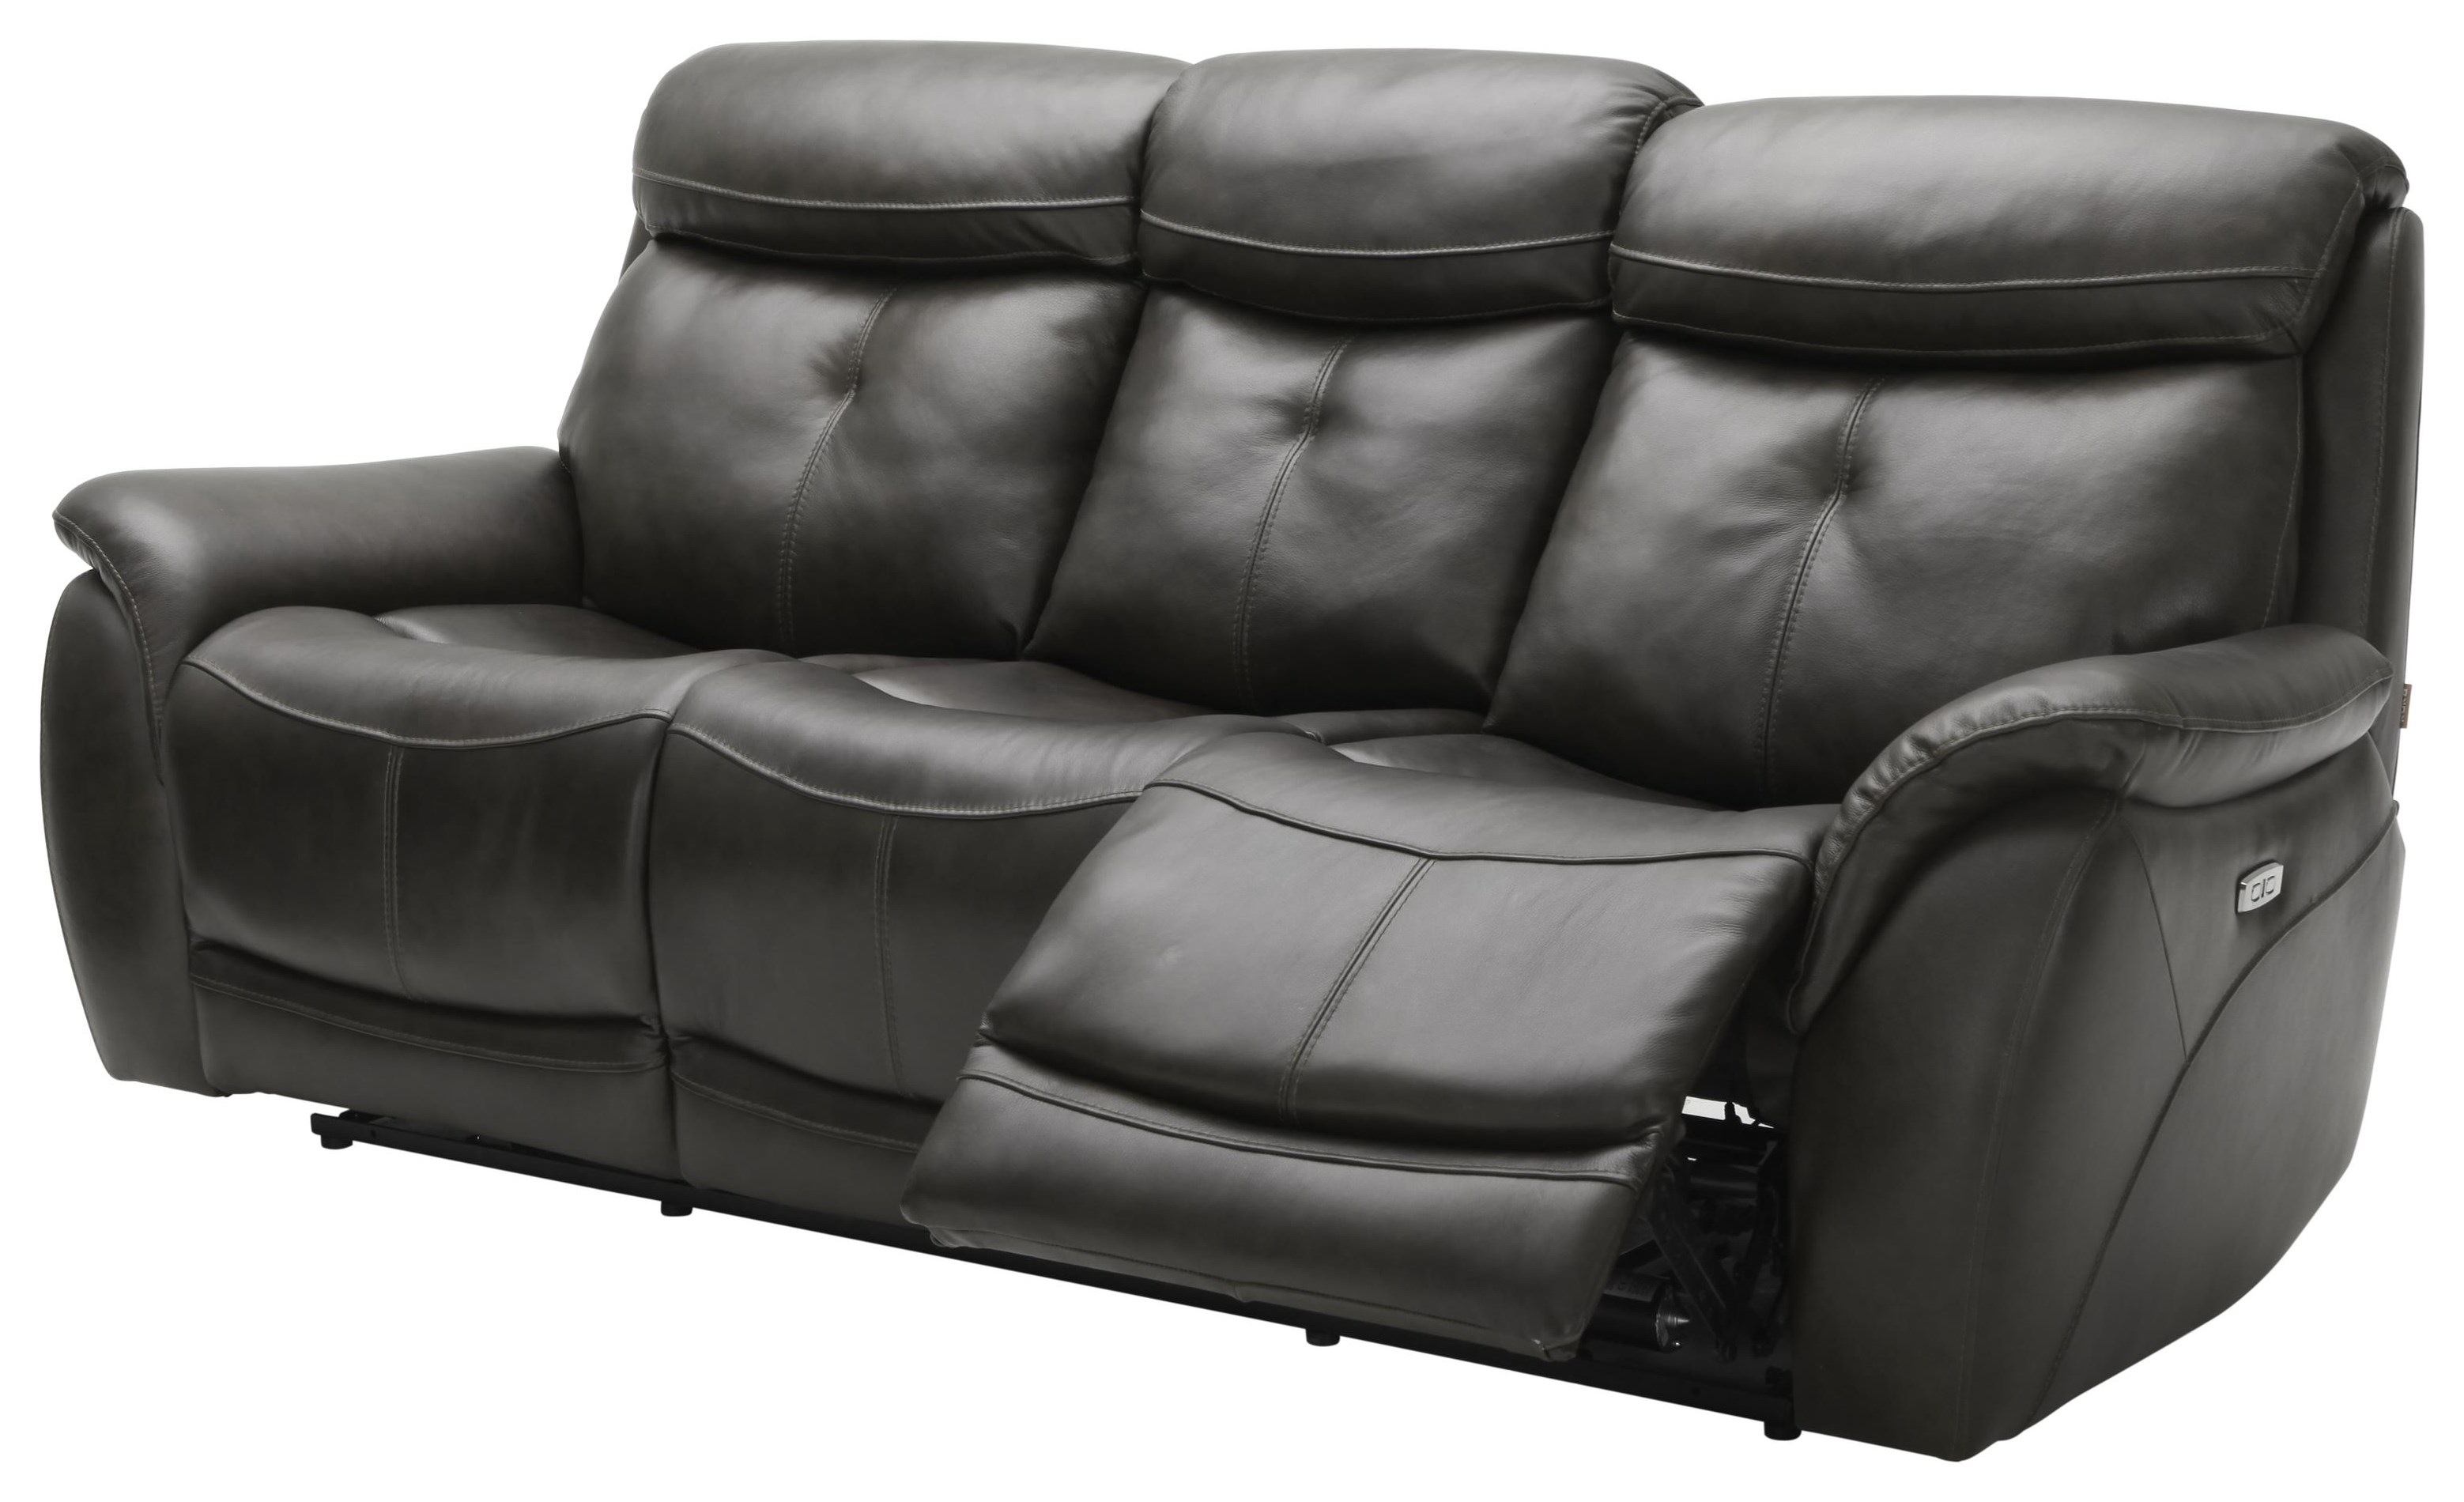 Largos Dual Reclining Leather Sofa by K.C. at Walker's Furniture